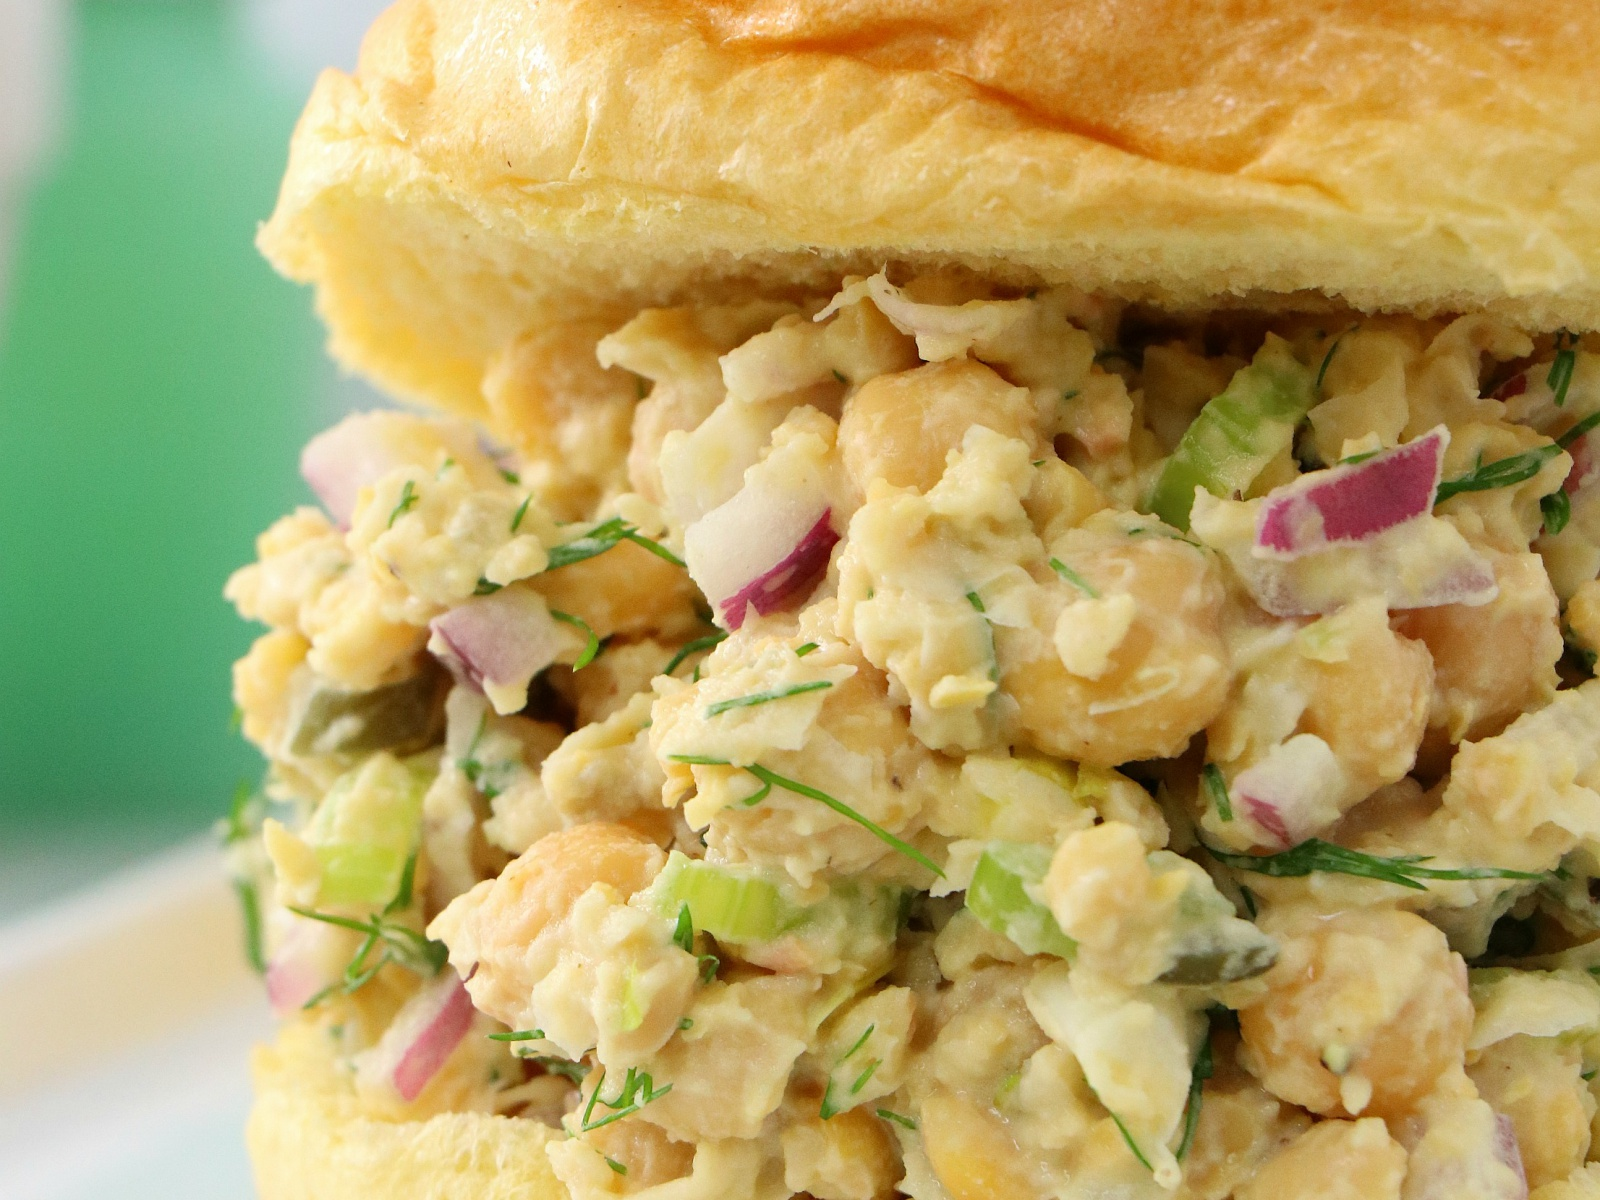 Chickpea Tuna Salad